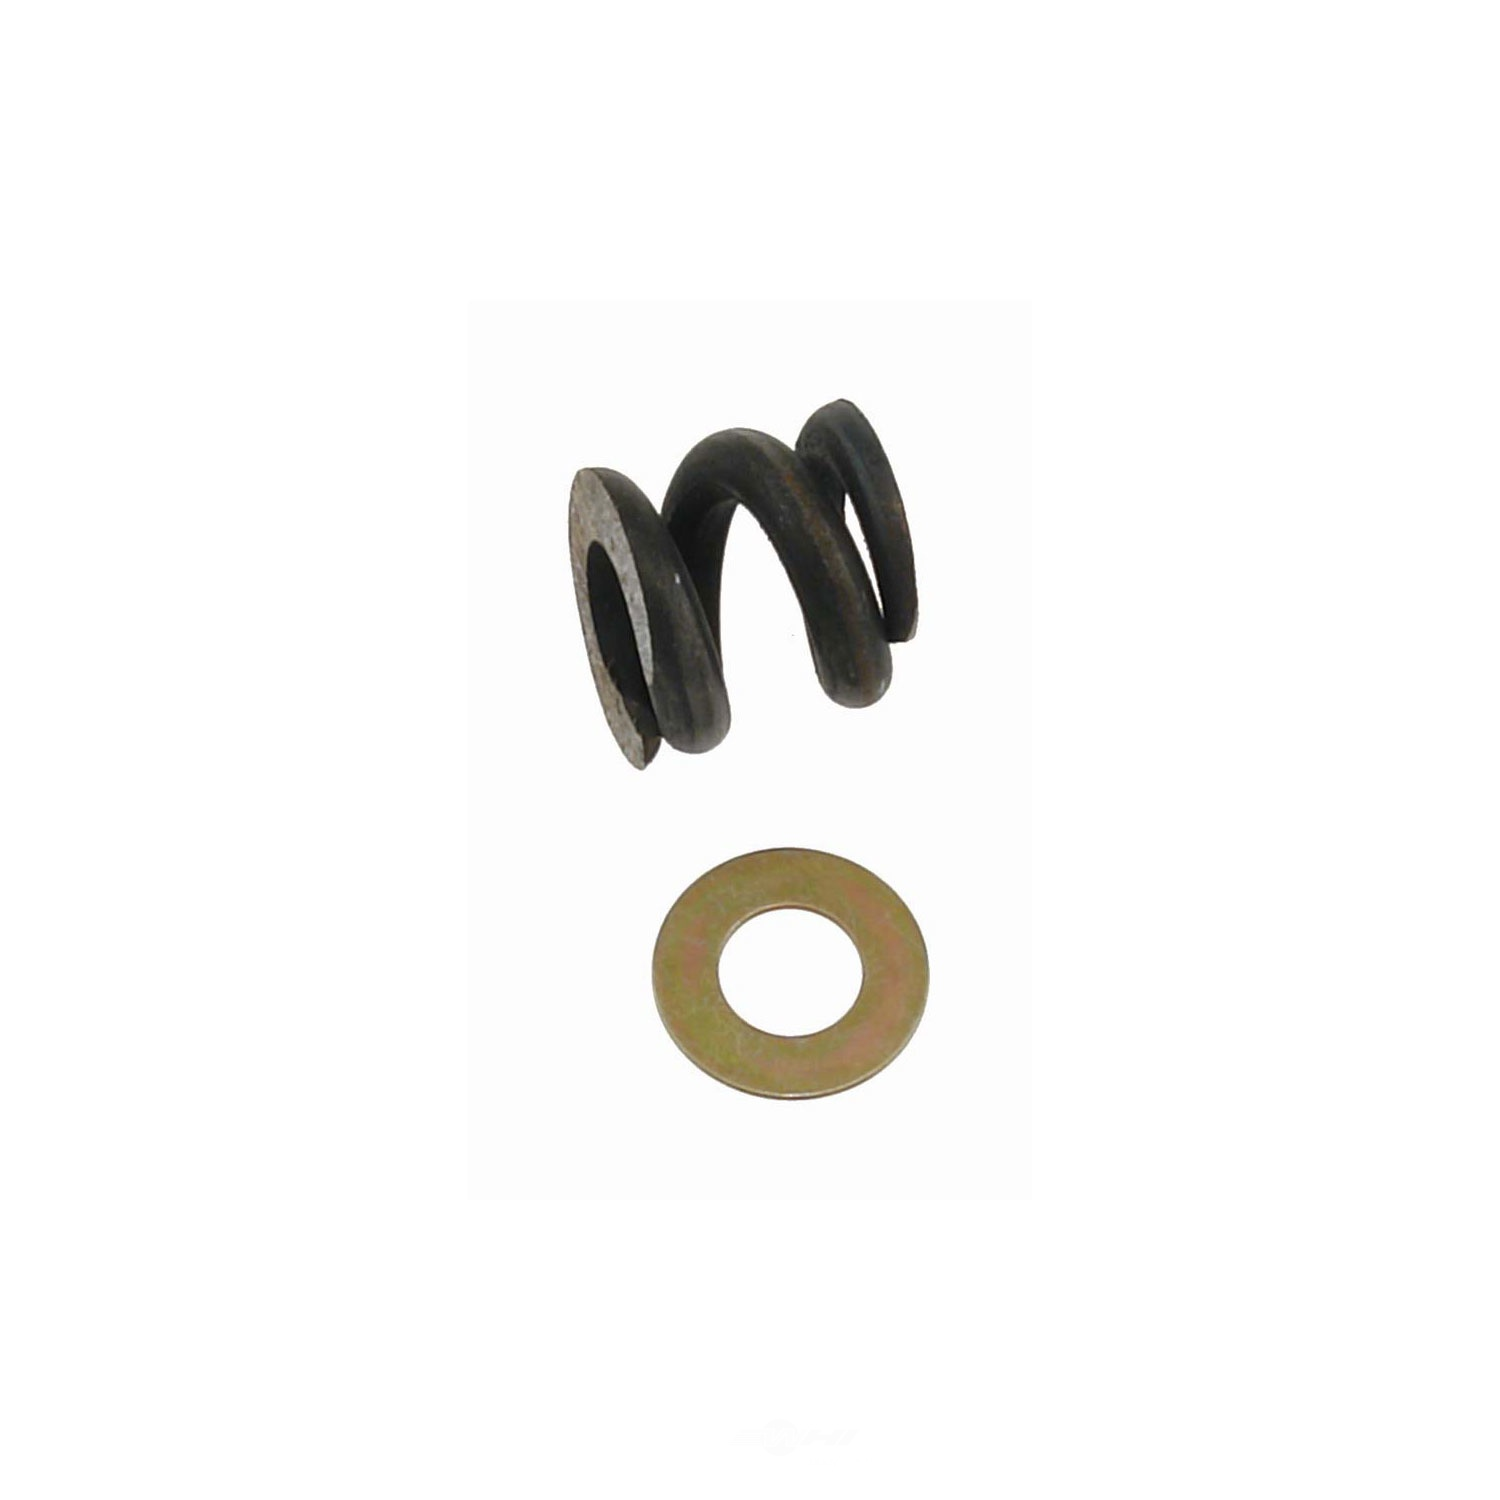 CARLSON QUALITY BRAKE PARTS - Brake Hold Down Spring - CRL H1890